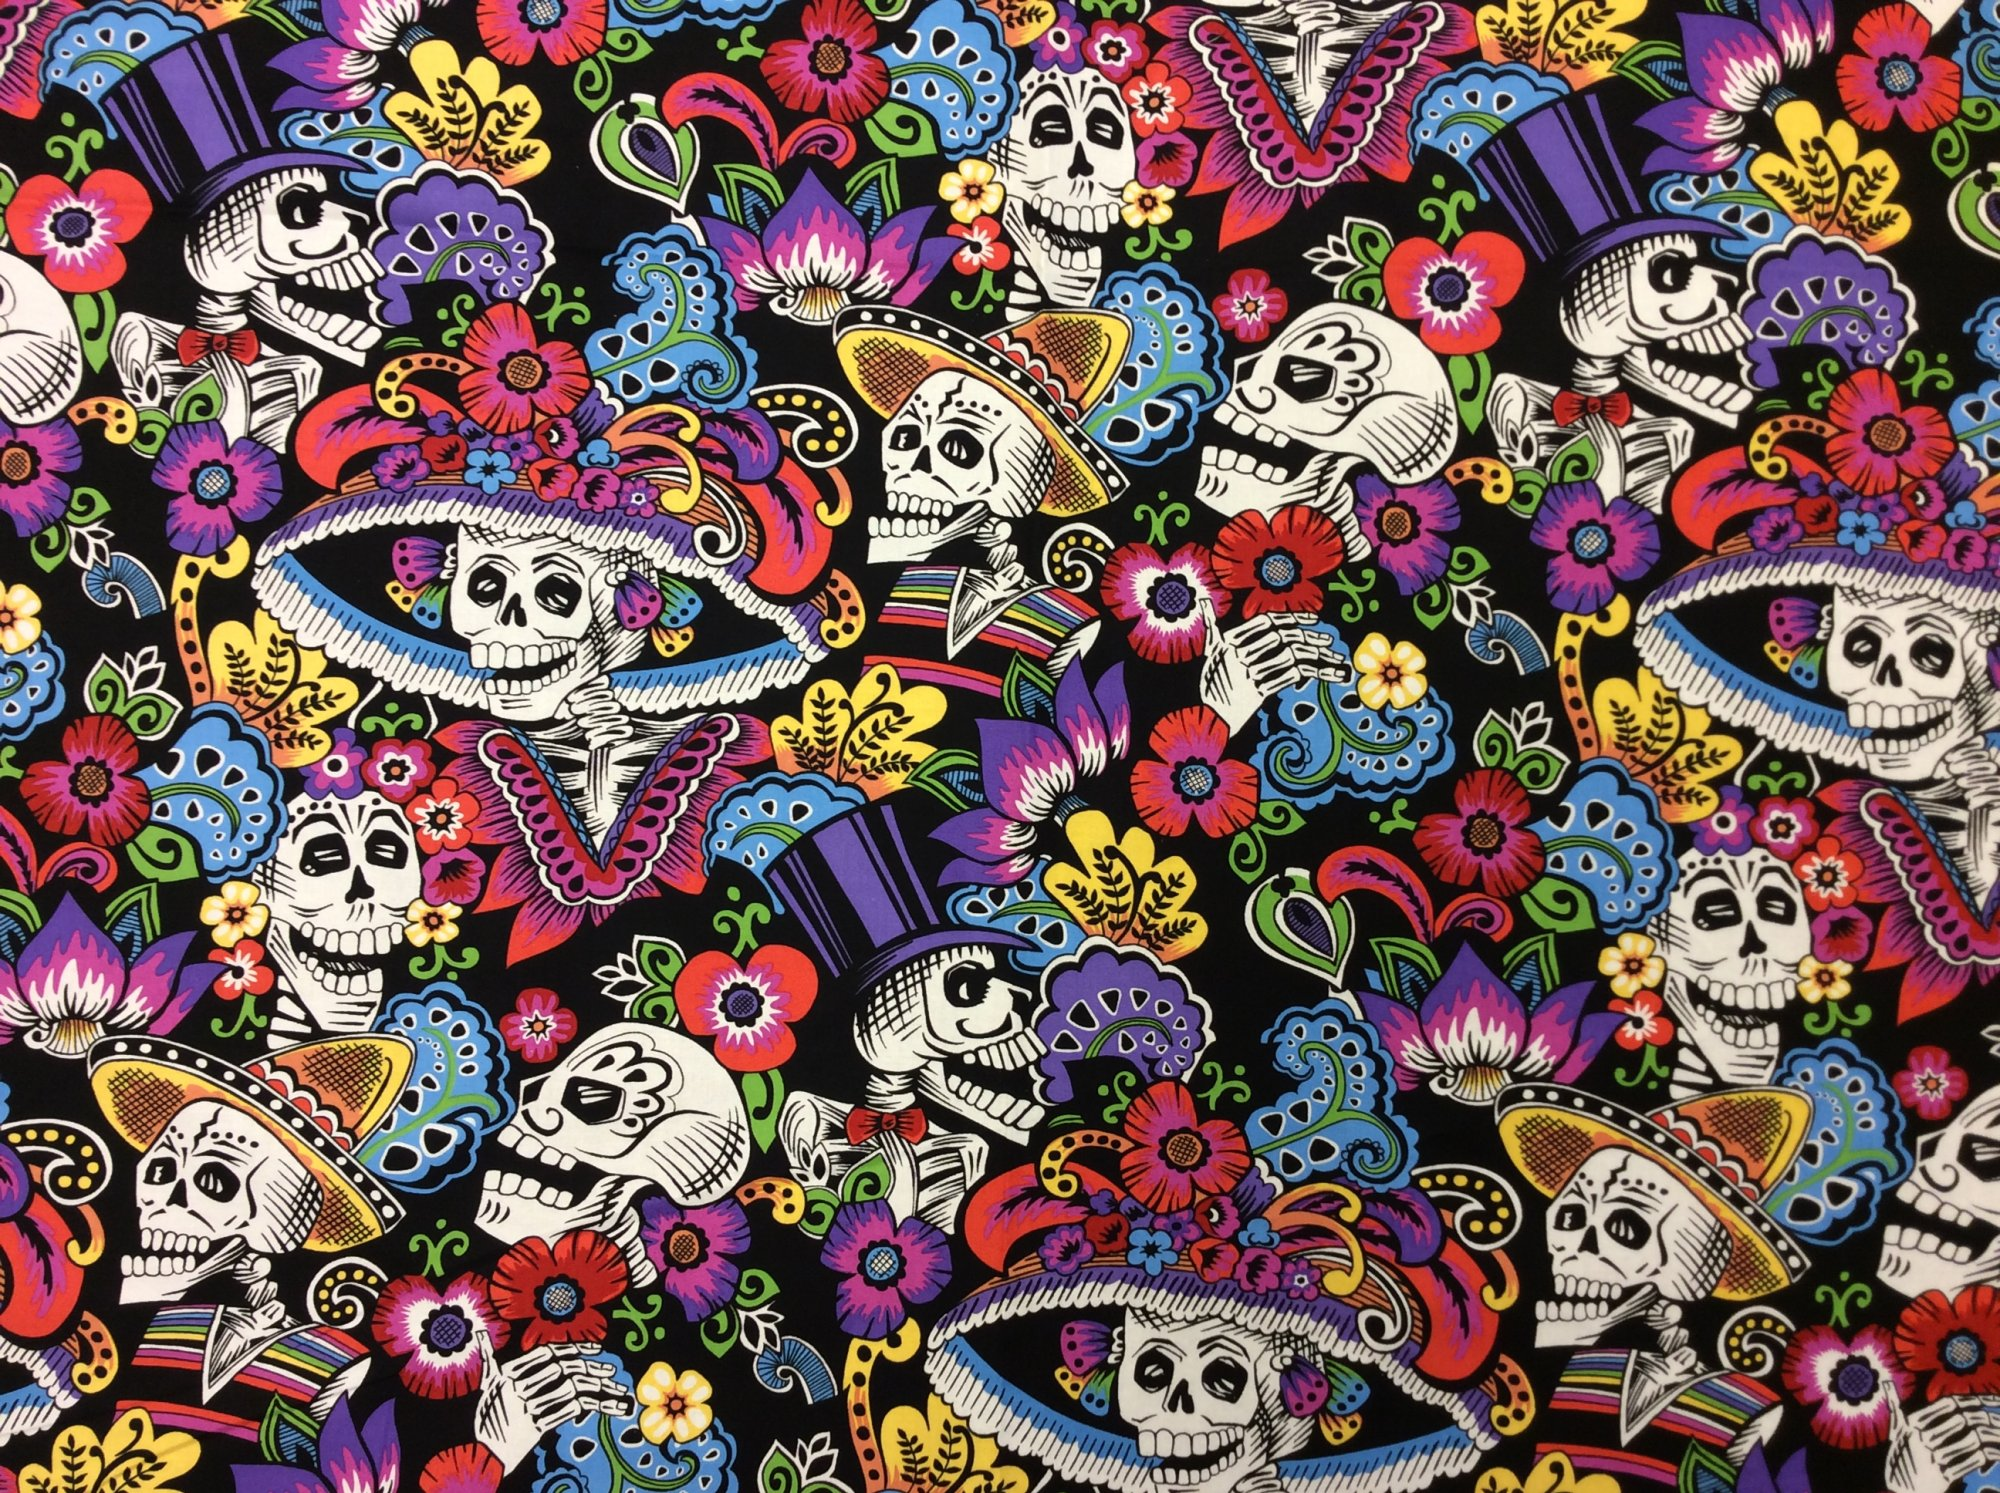 Dia de los Muertos Day of the Dead Frida Kahlo Mexico Latin Posada Catrina Cotton Quilt Fabric AH256